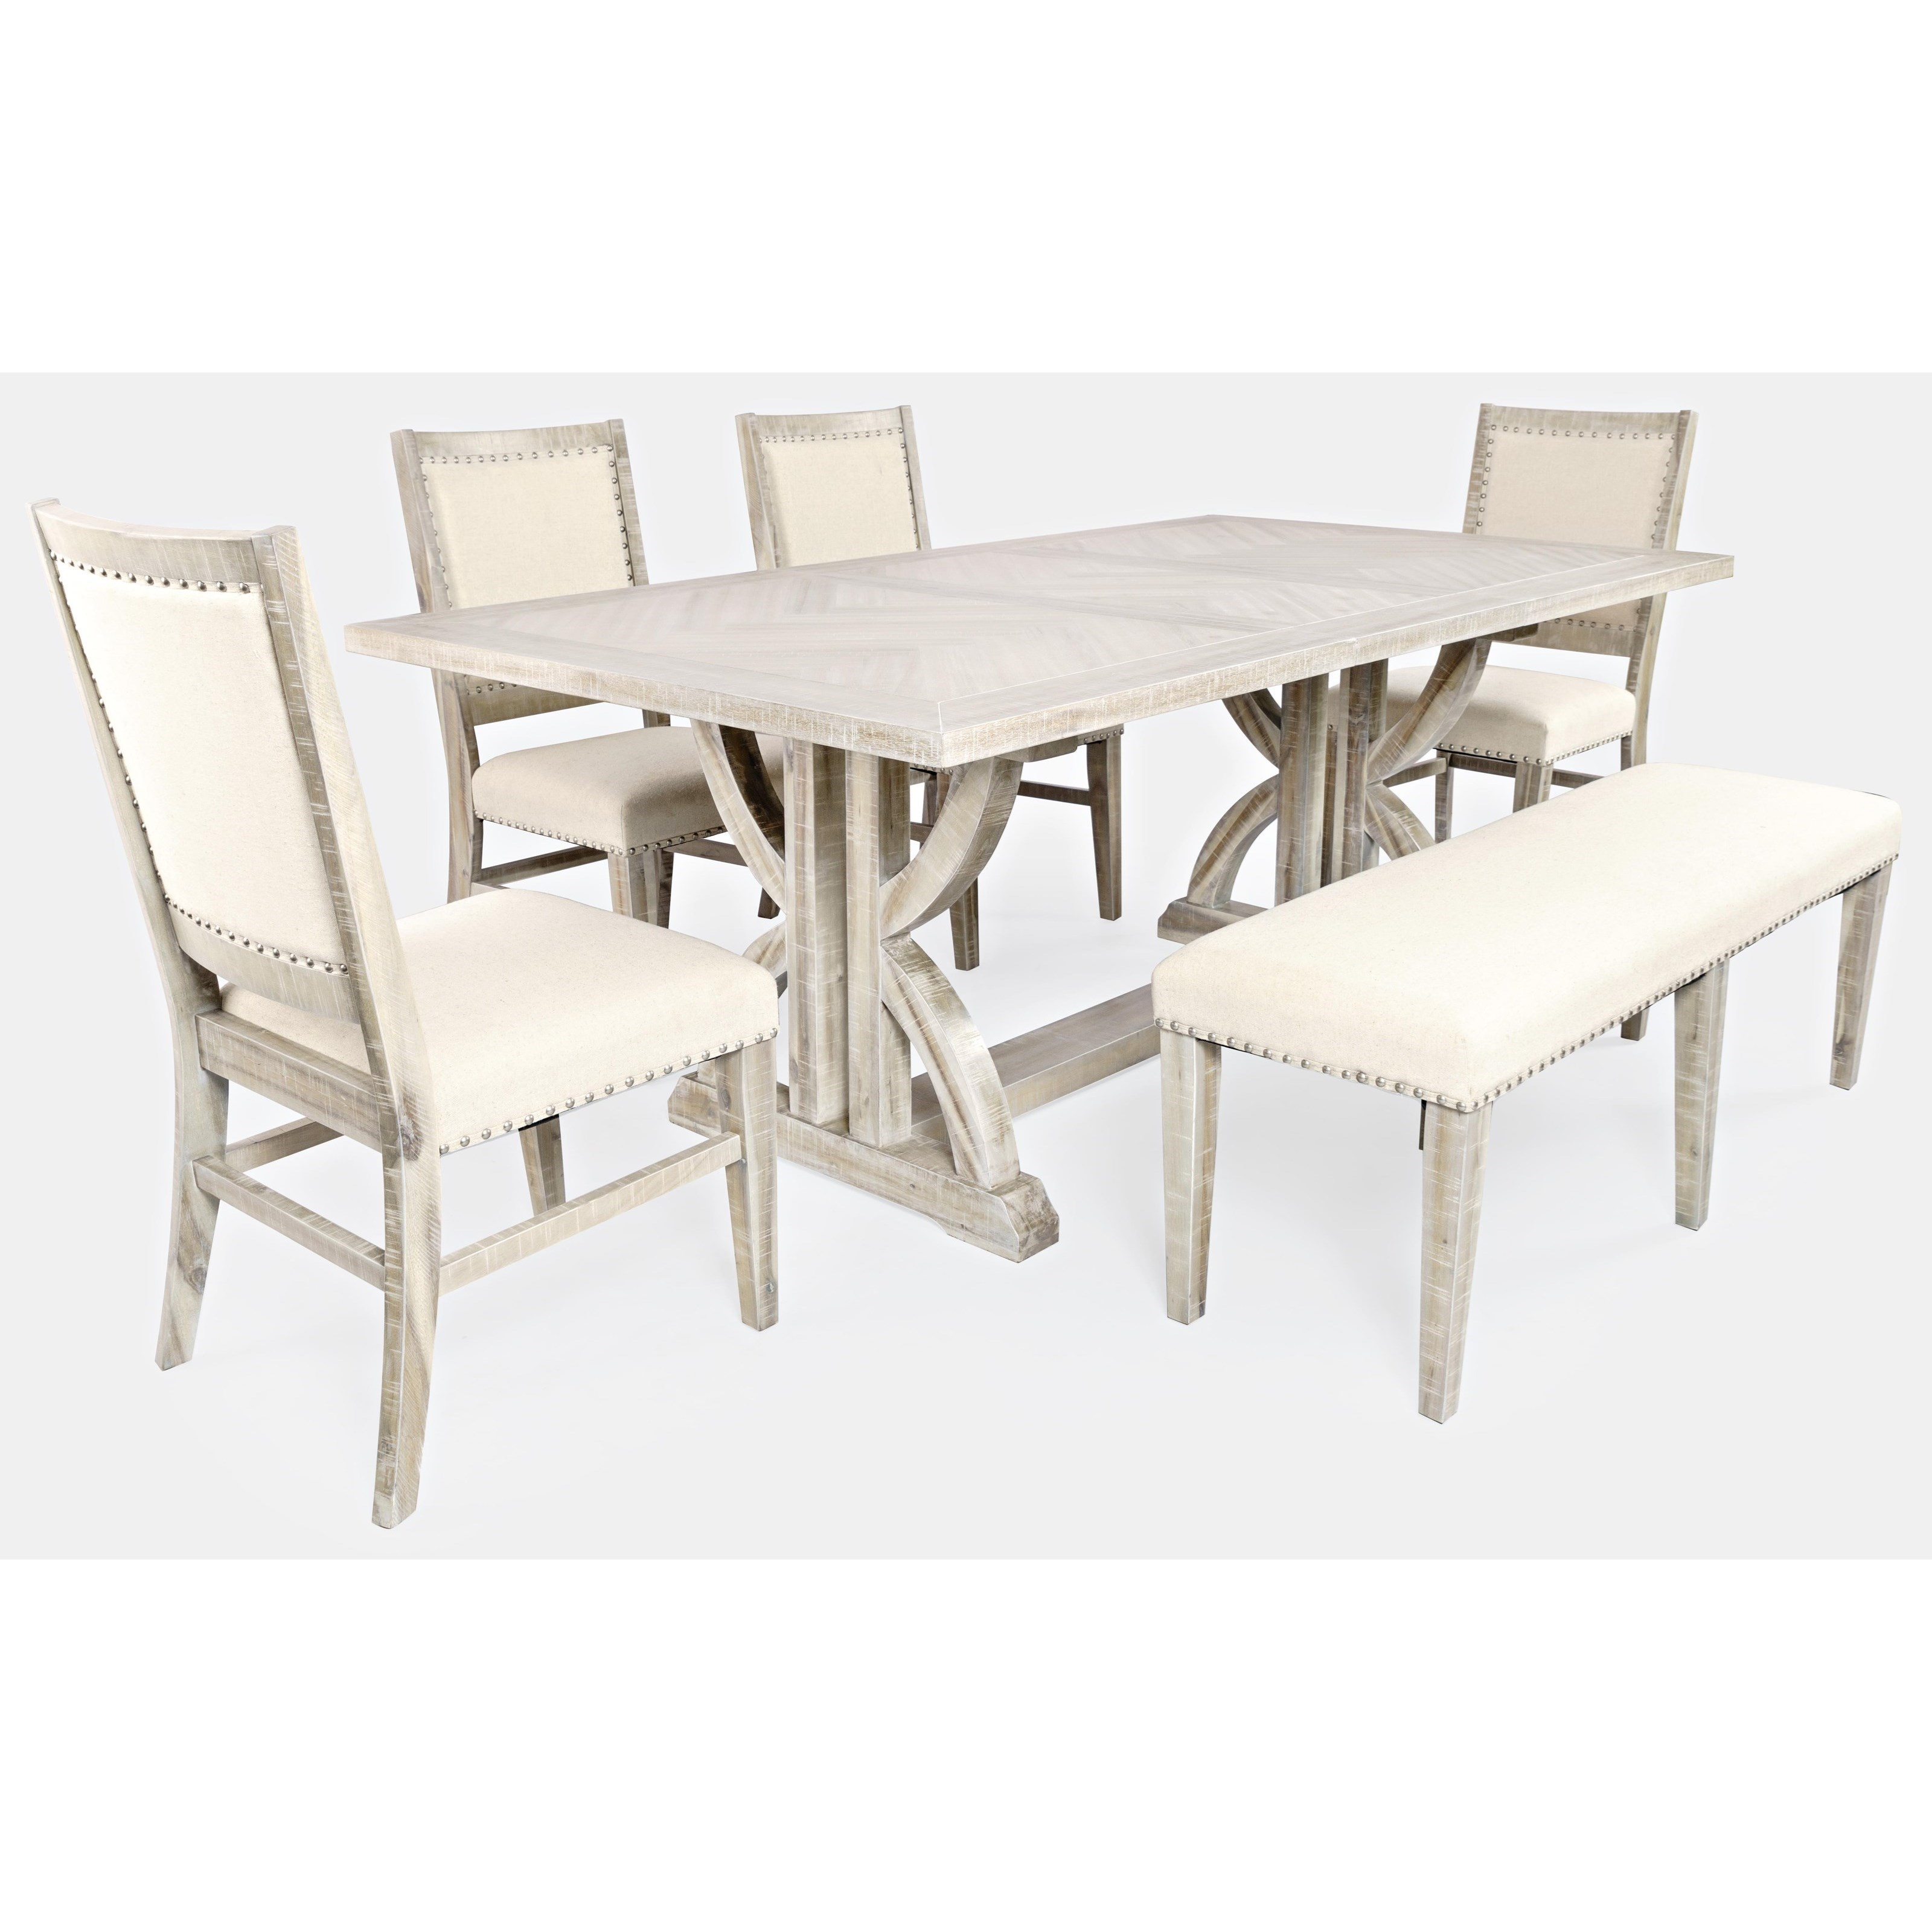 Fairview Dining Table and Chair Set with Bench by Jofran at Jofran